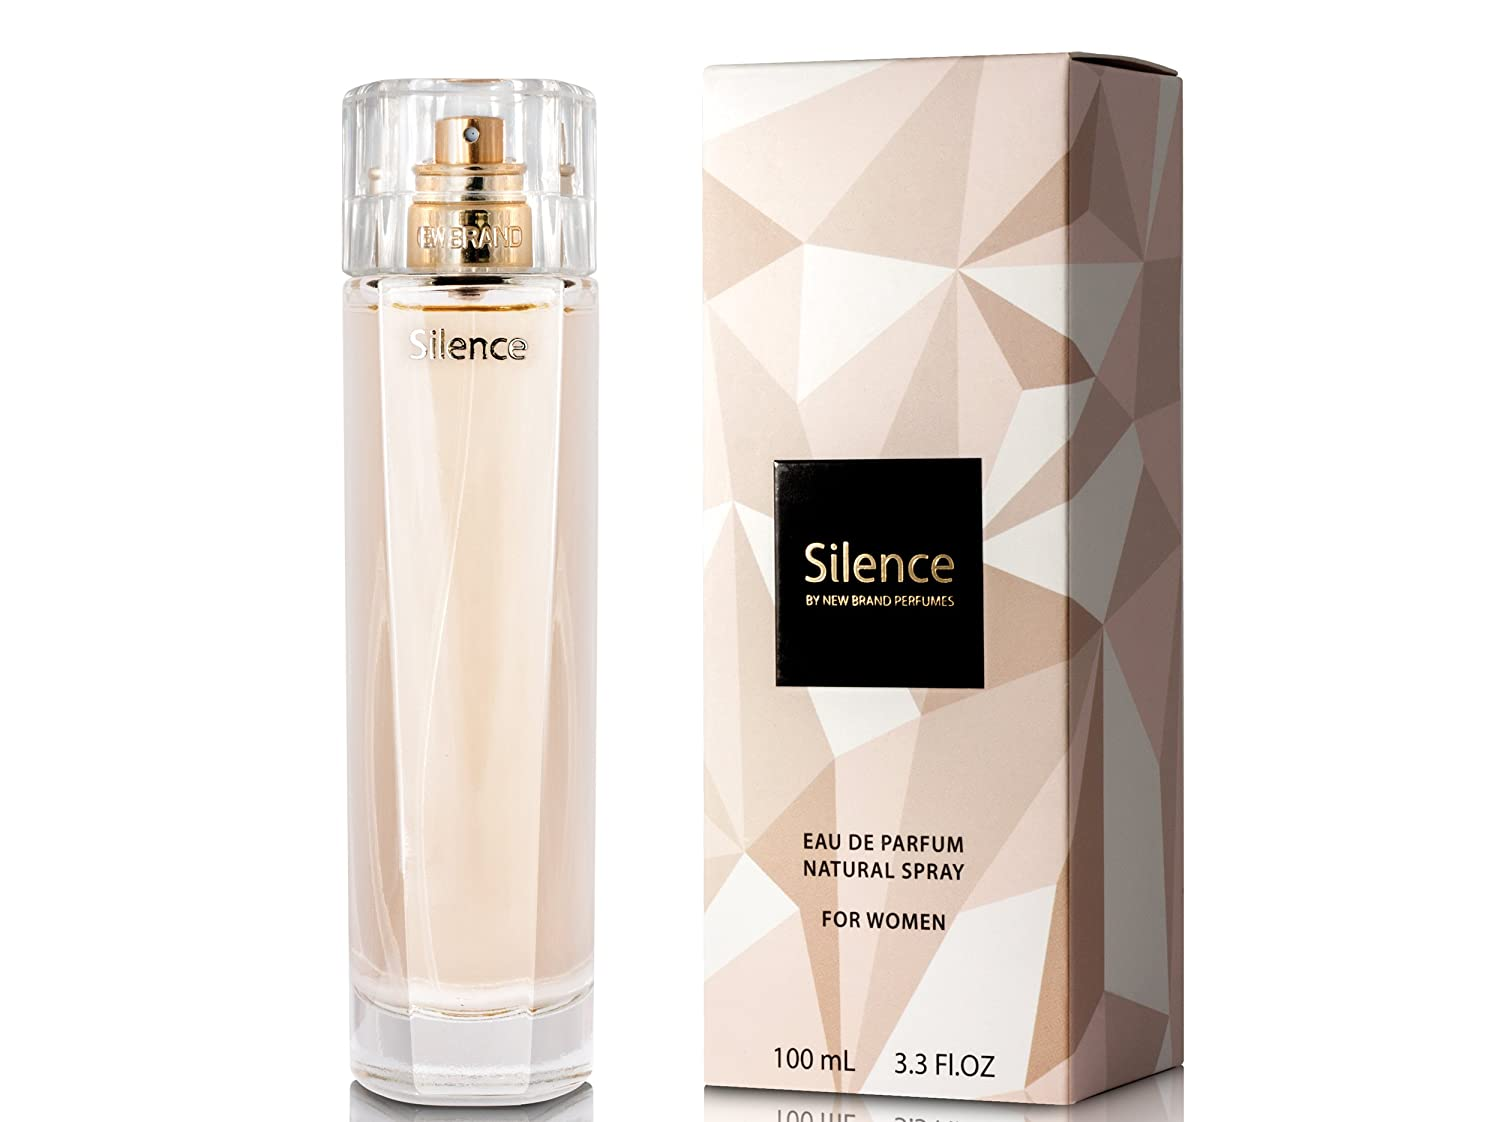 NEW BRAND PERFUMES Edp silence (l) 100 ml spr, 3.30 Fl Oz